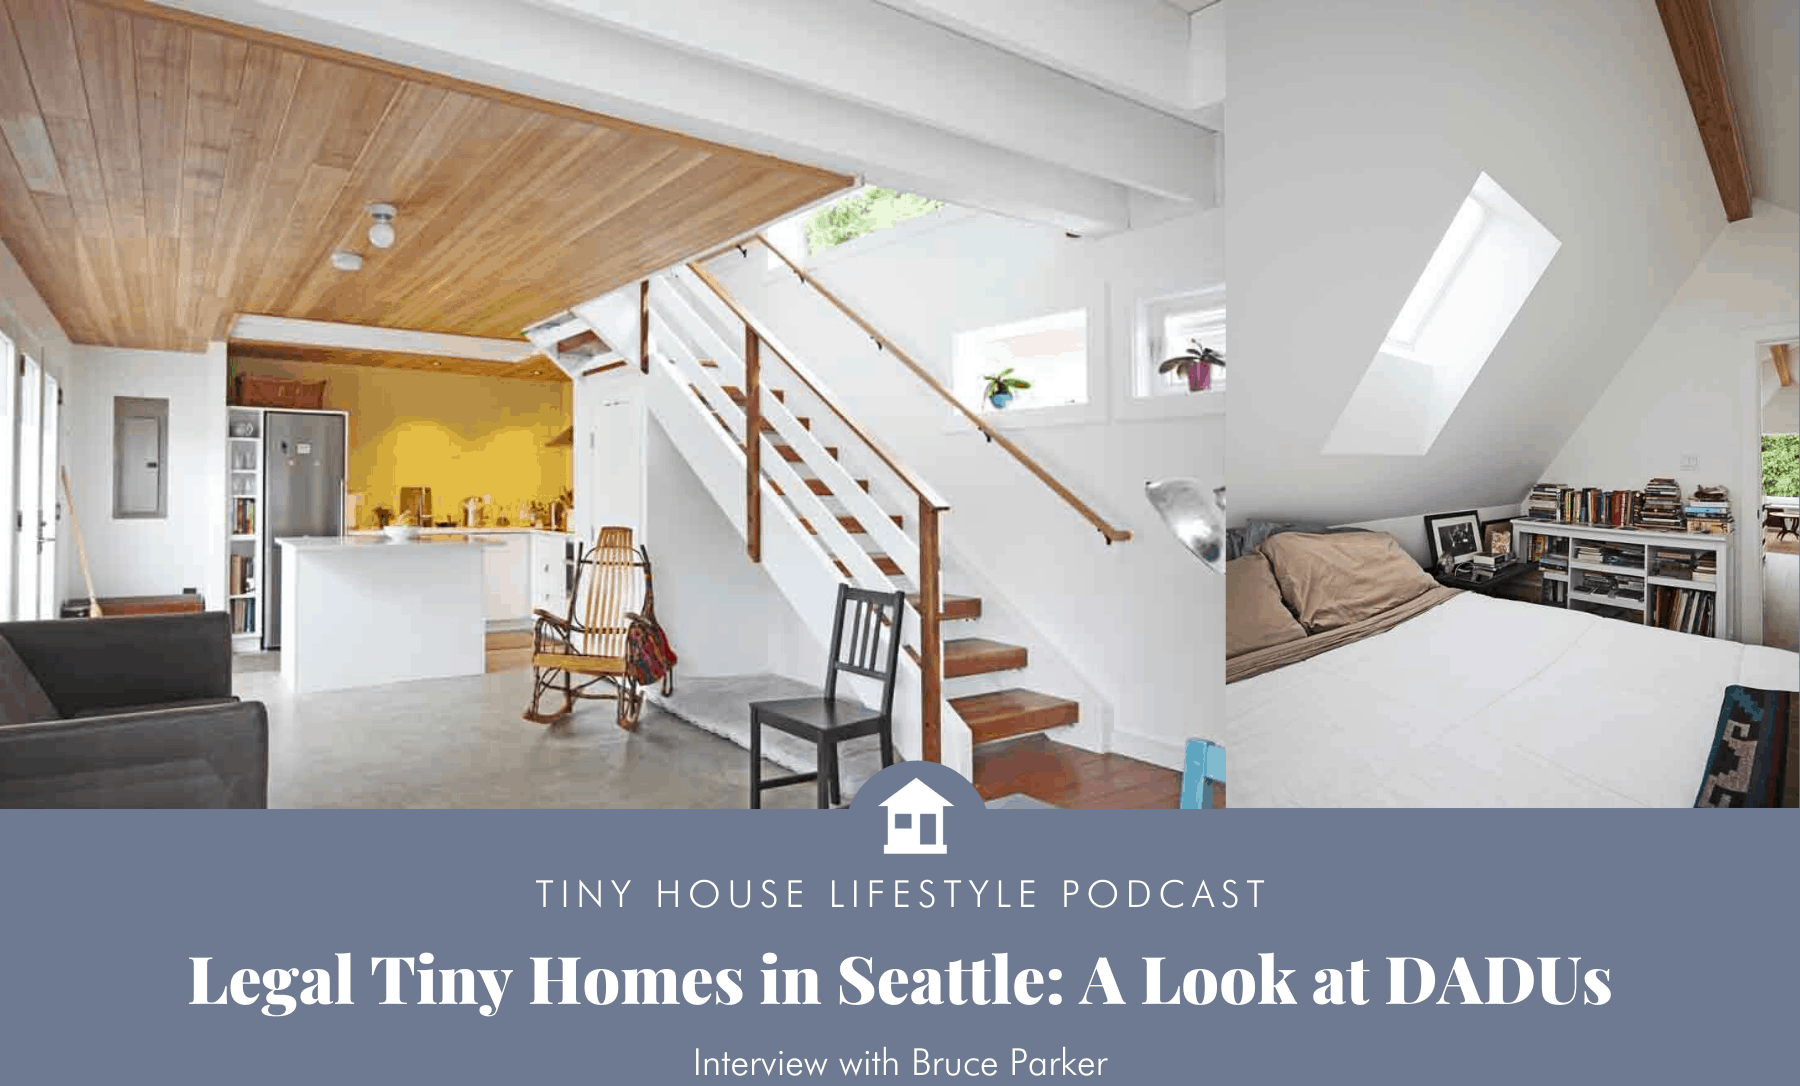 Podcast Interview: Legal Tiny Homes in Seattle